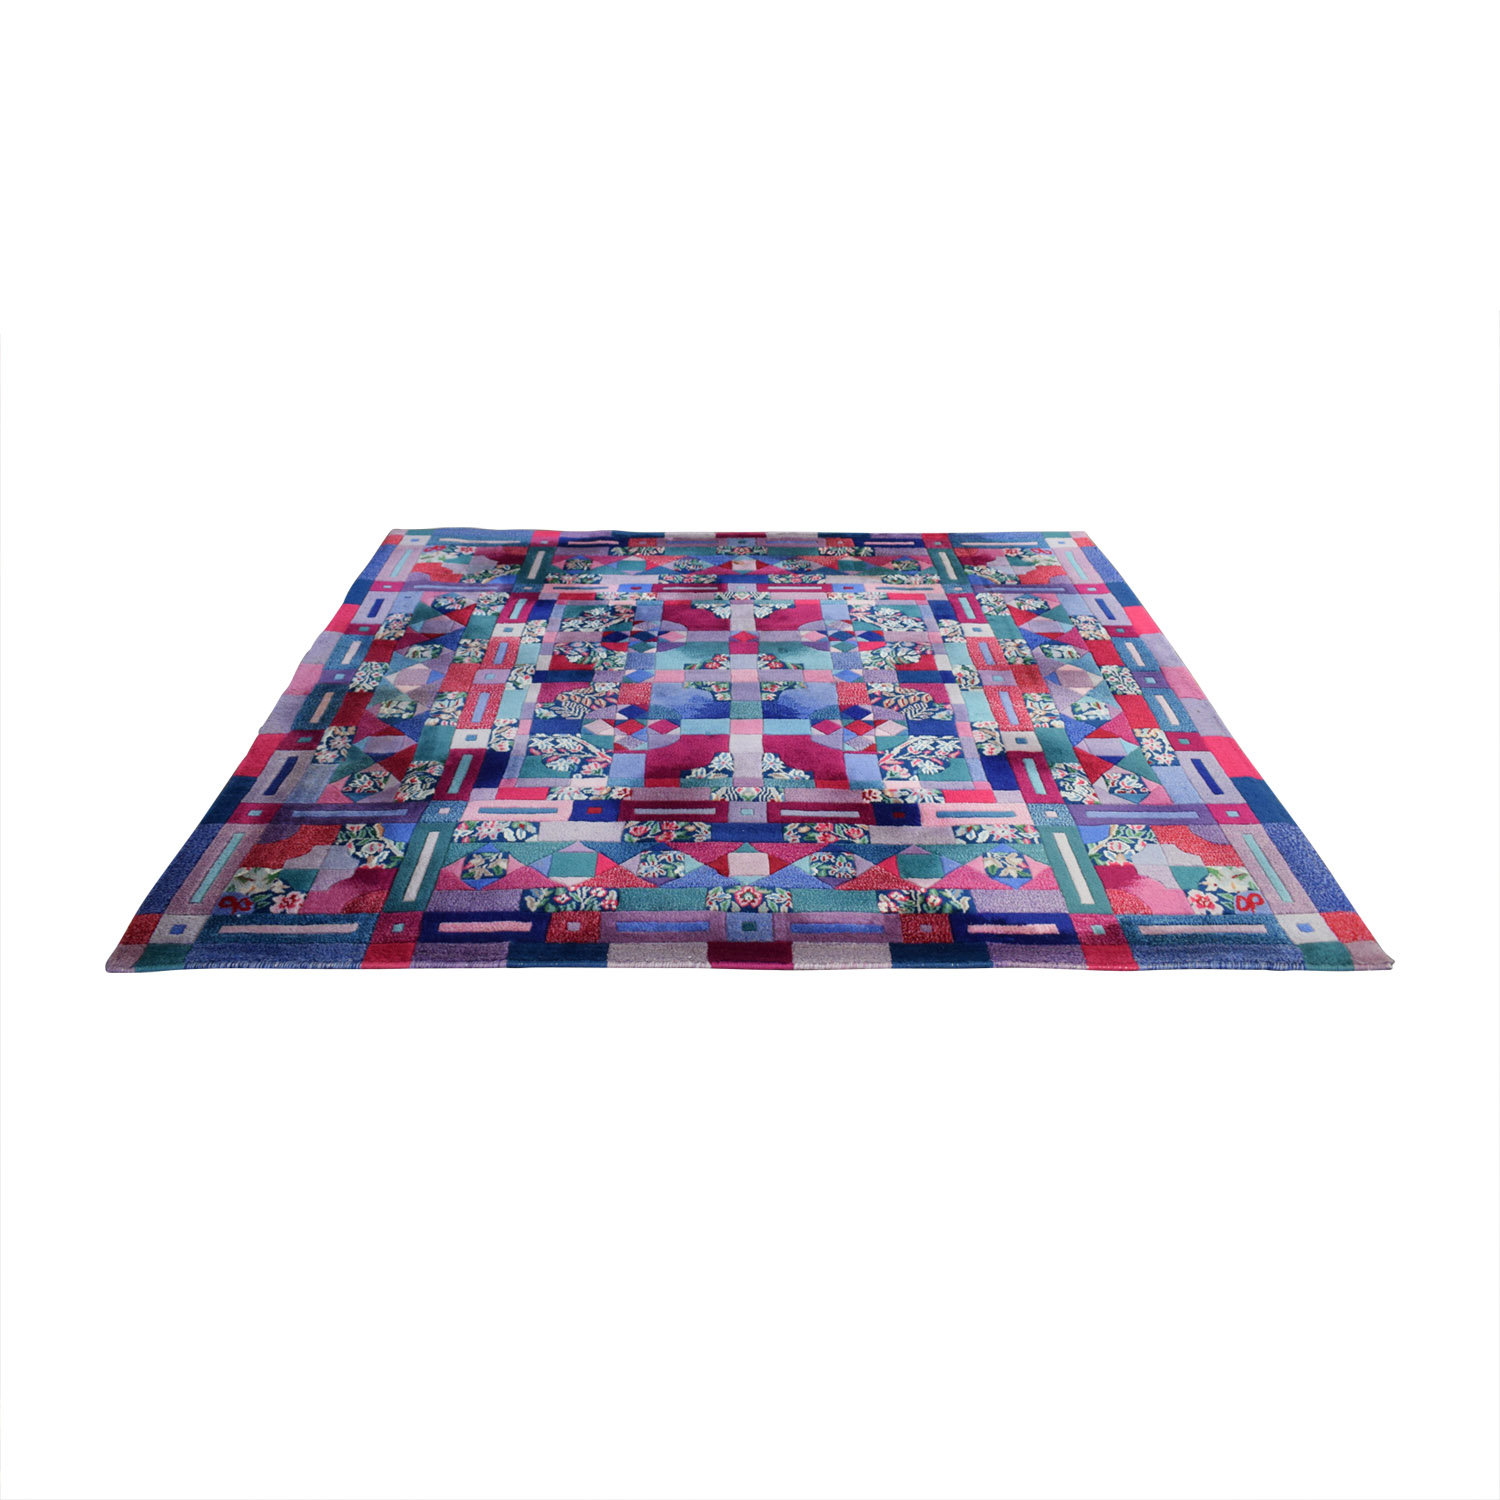 ABC Carpet & Home ABC Carpet & Home Square Wool